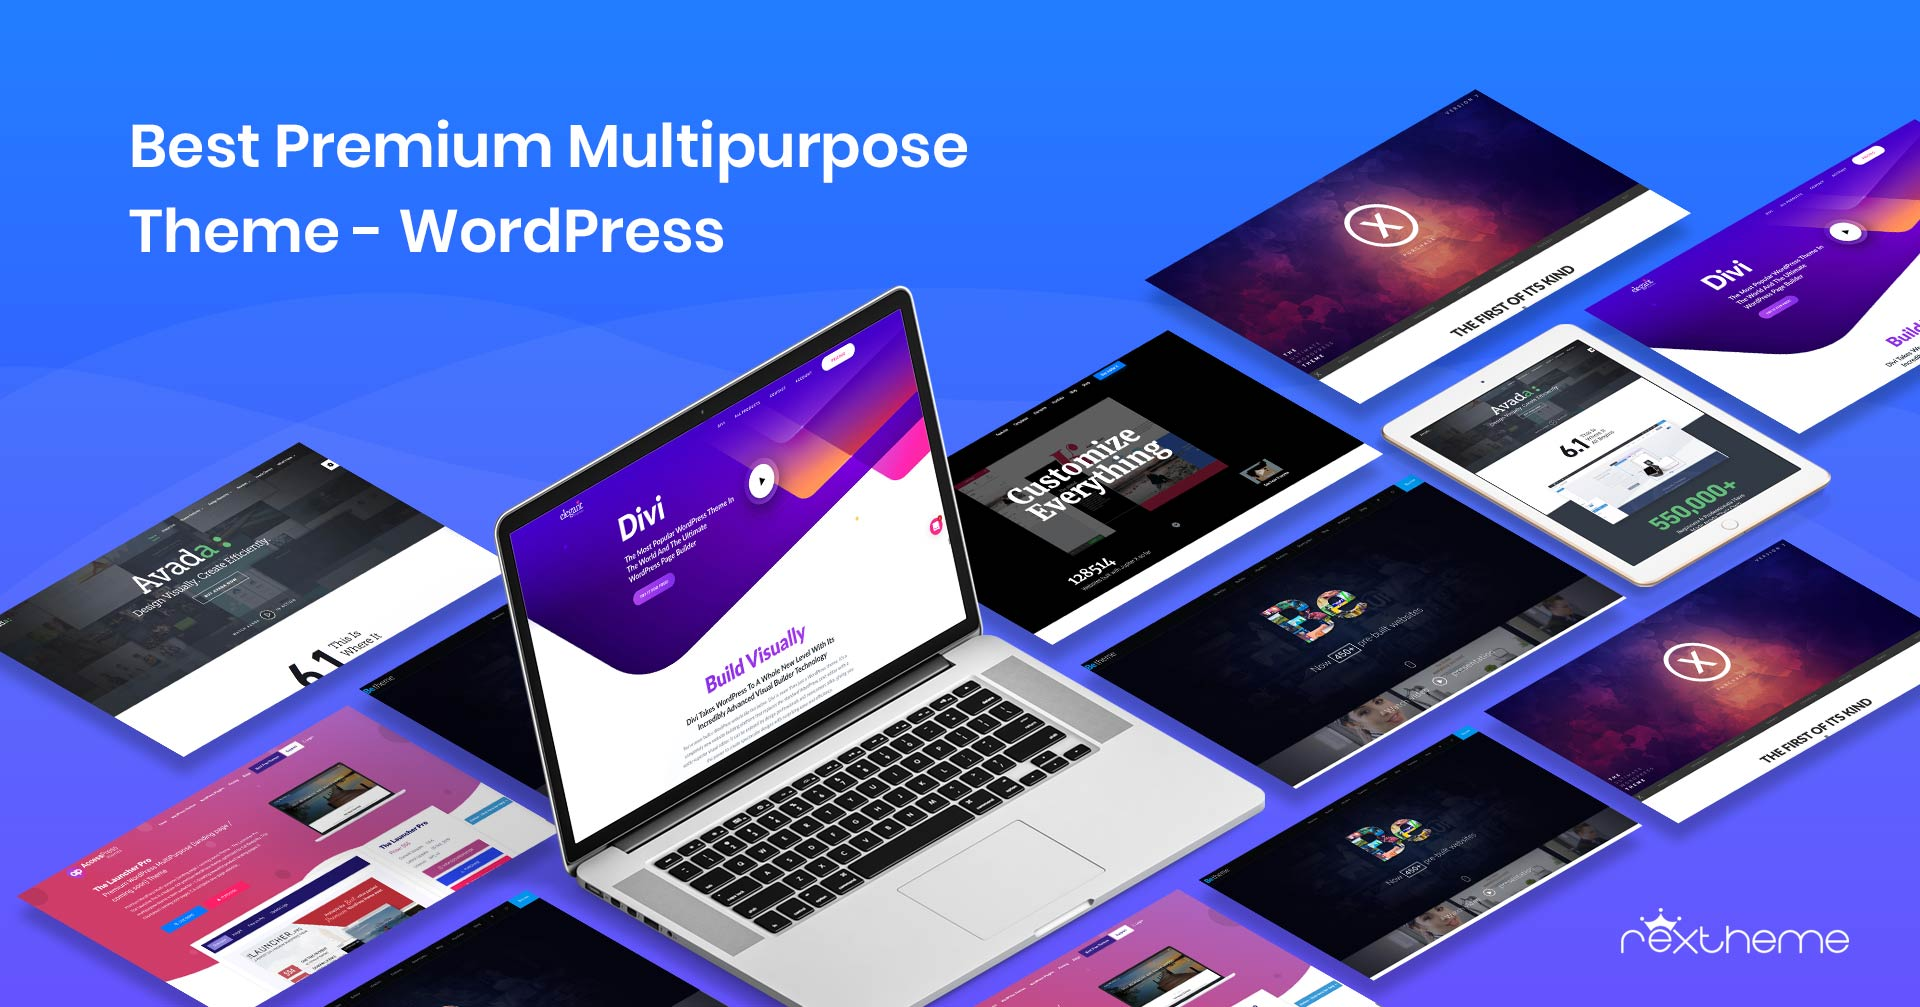 7+ Best Premium Multipurpose Theme – WordPress